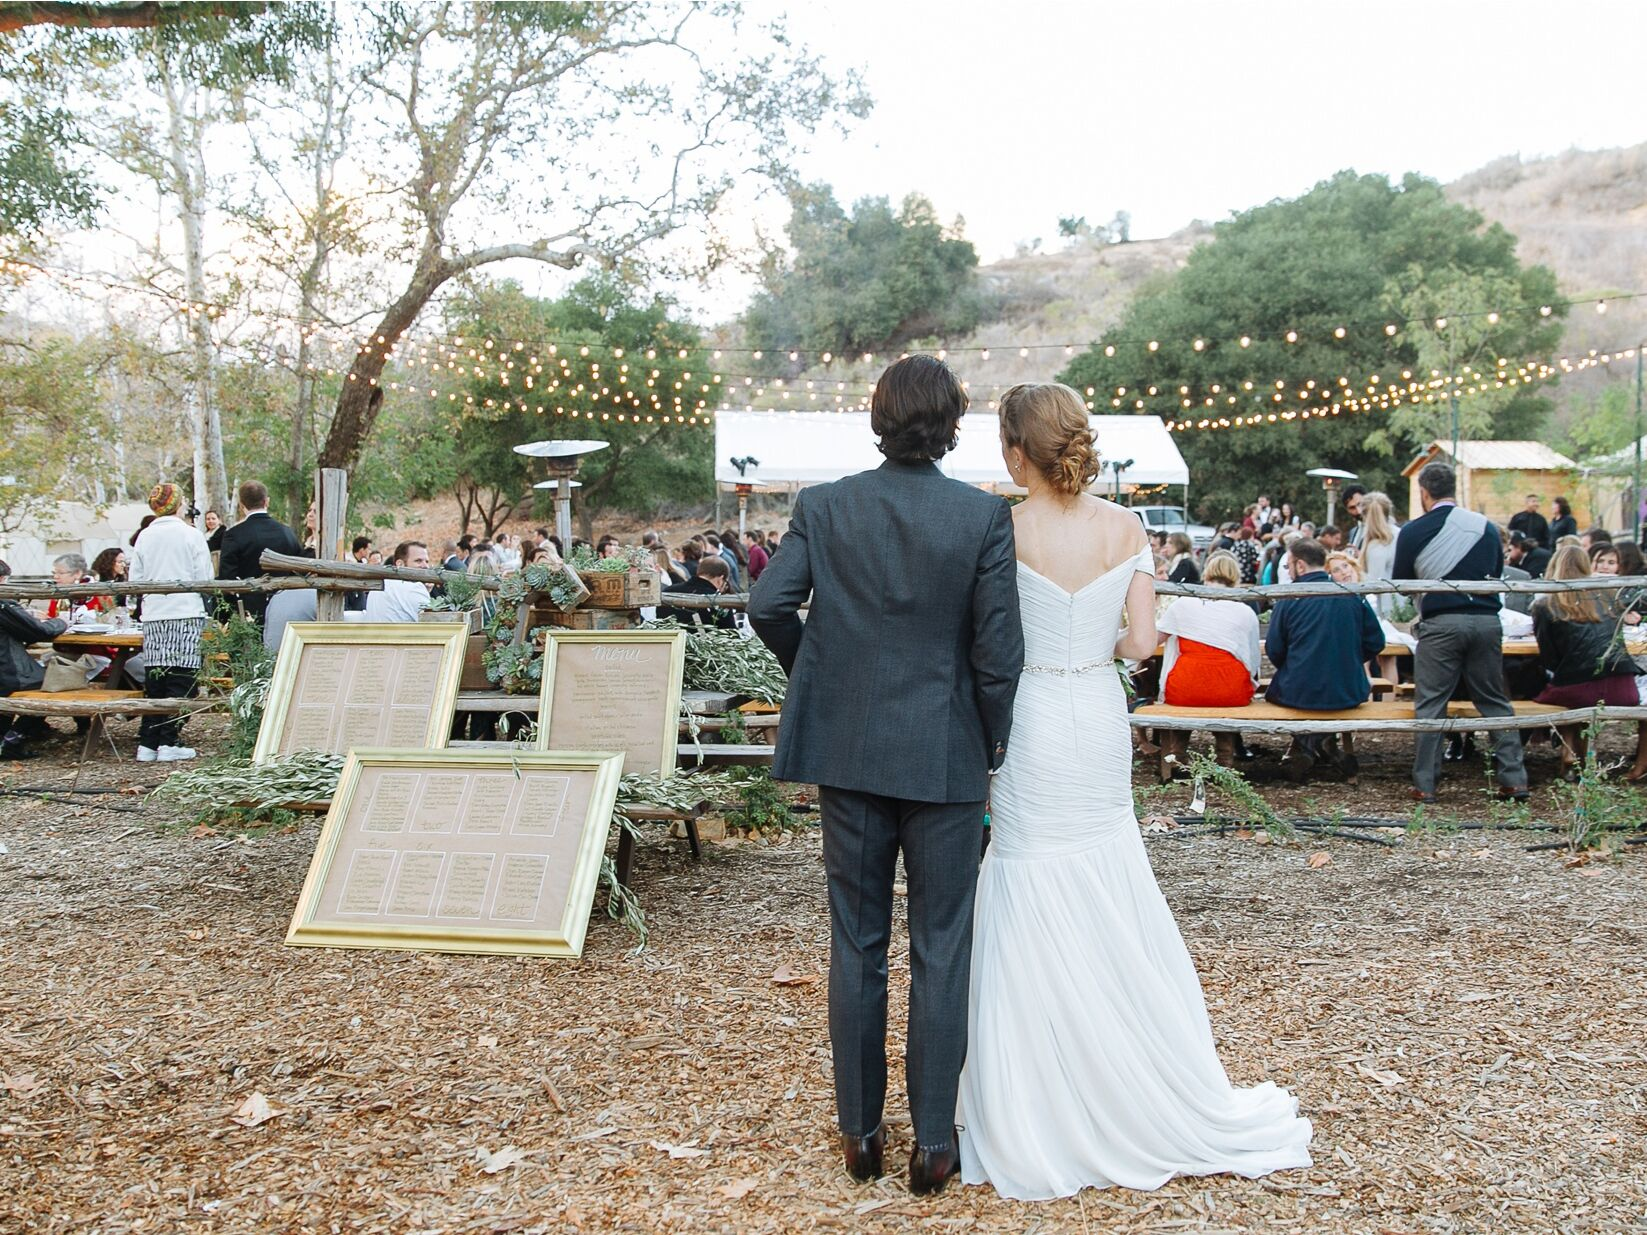 Wedding Gift List Etiquette: Wedding Gift Etiquette: Is 'Cover Your Plate' Still A Rule?